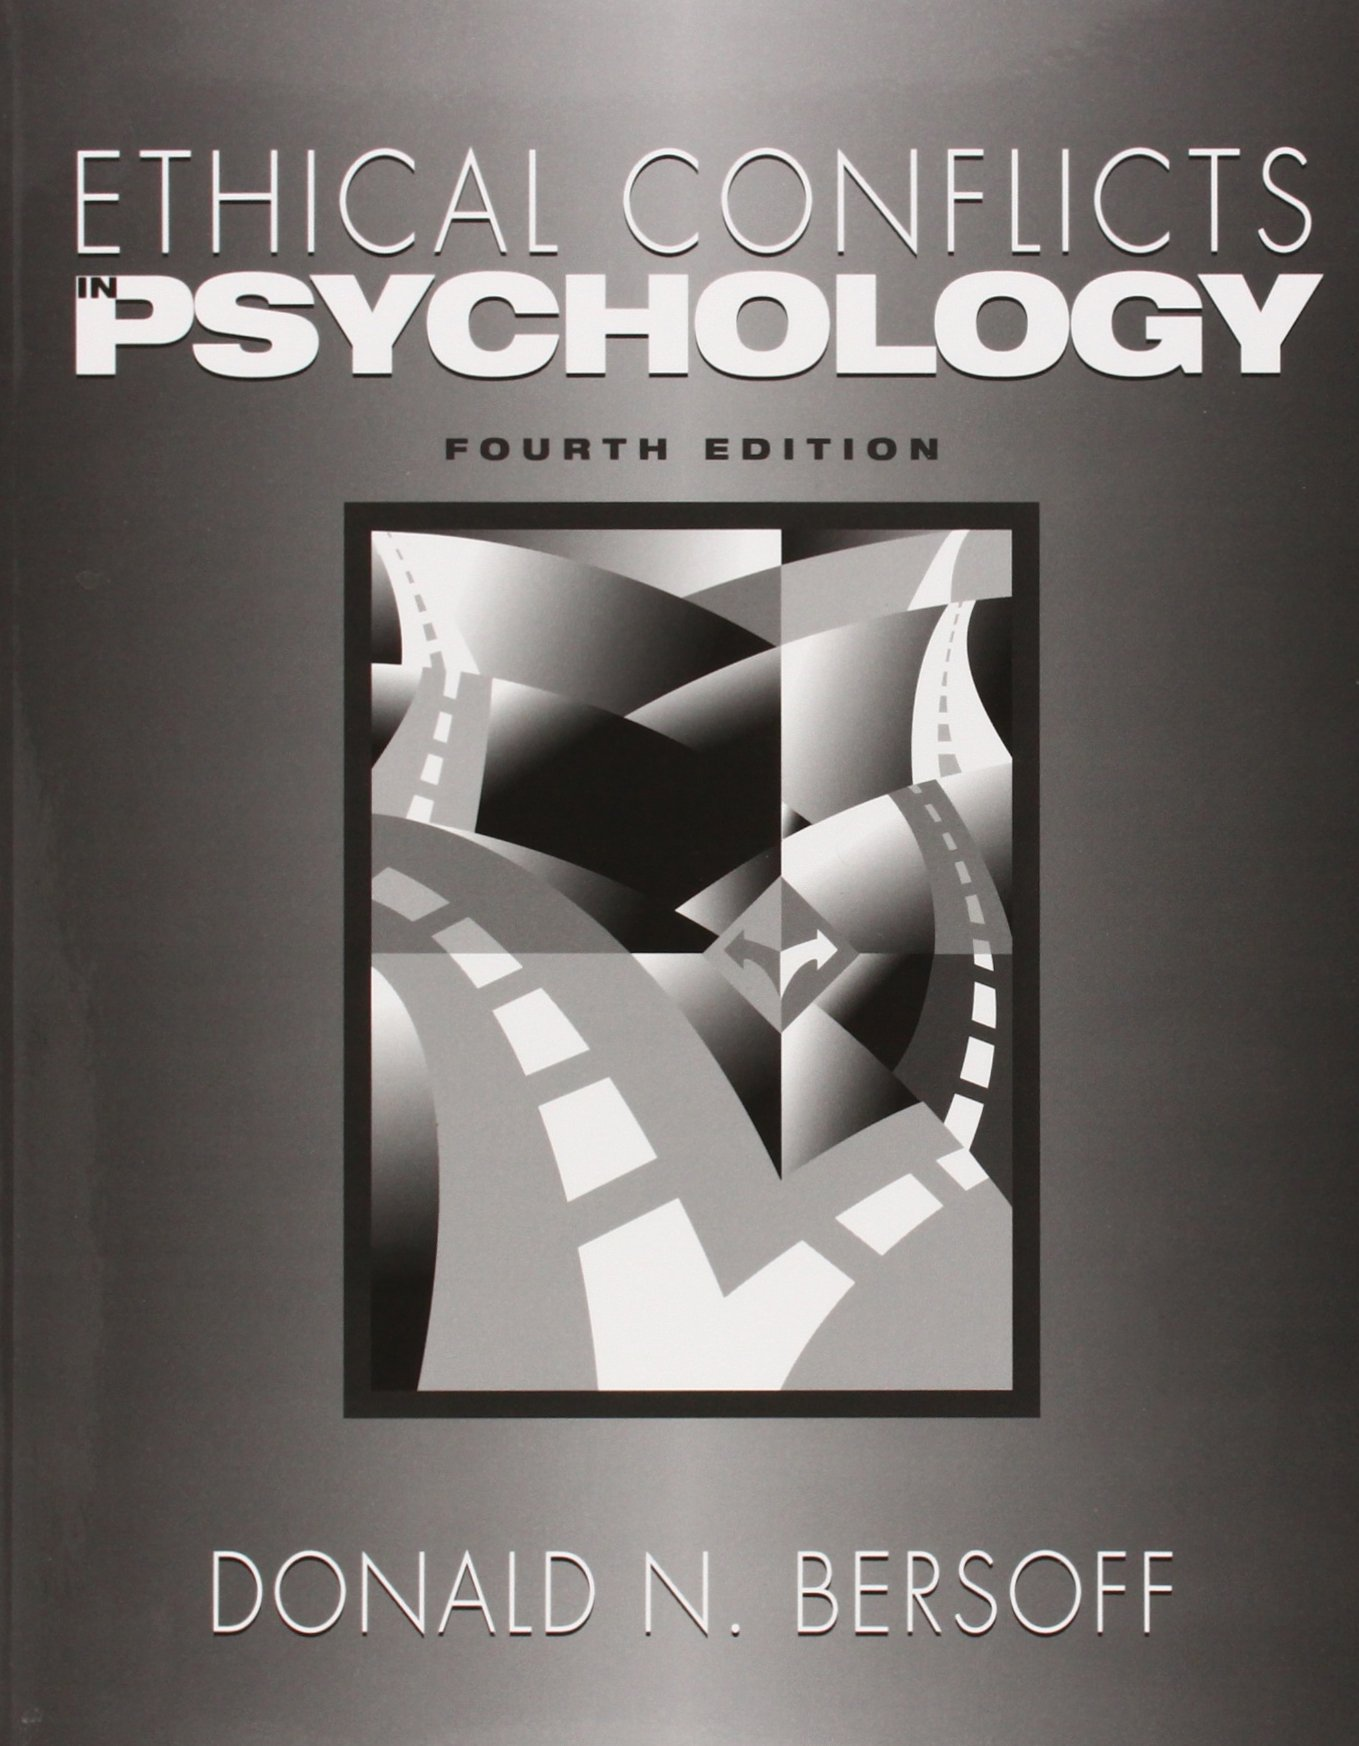 Ethical Conflicts in Psychology: Donald N Bersoff: 9781433803536:  Amazon.com: Books